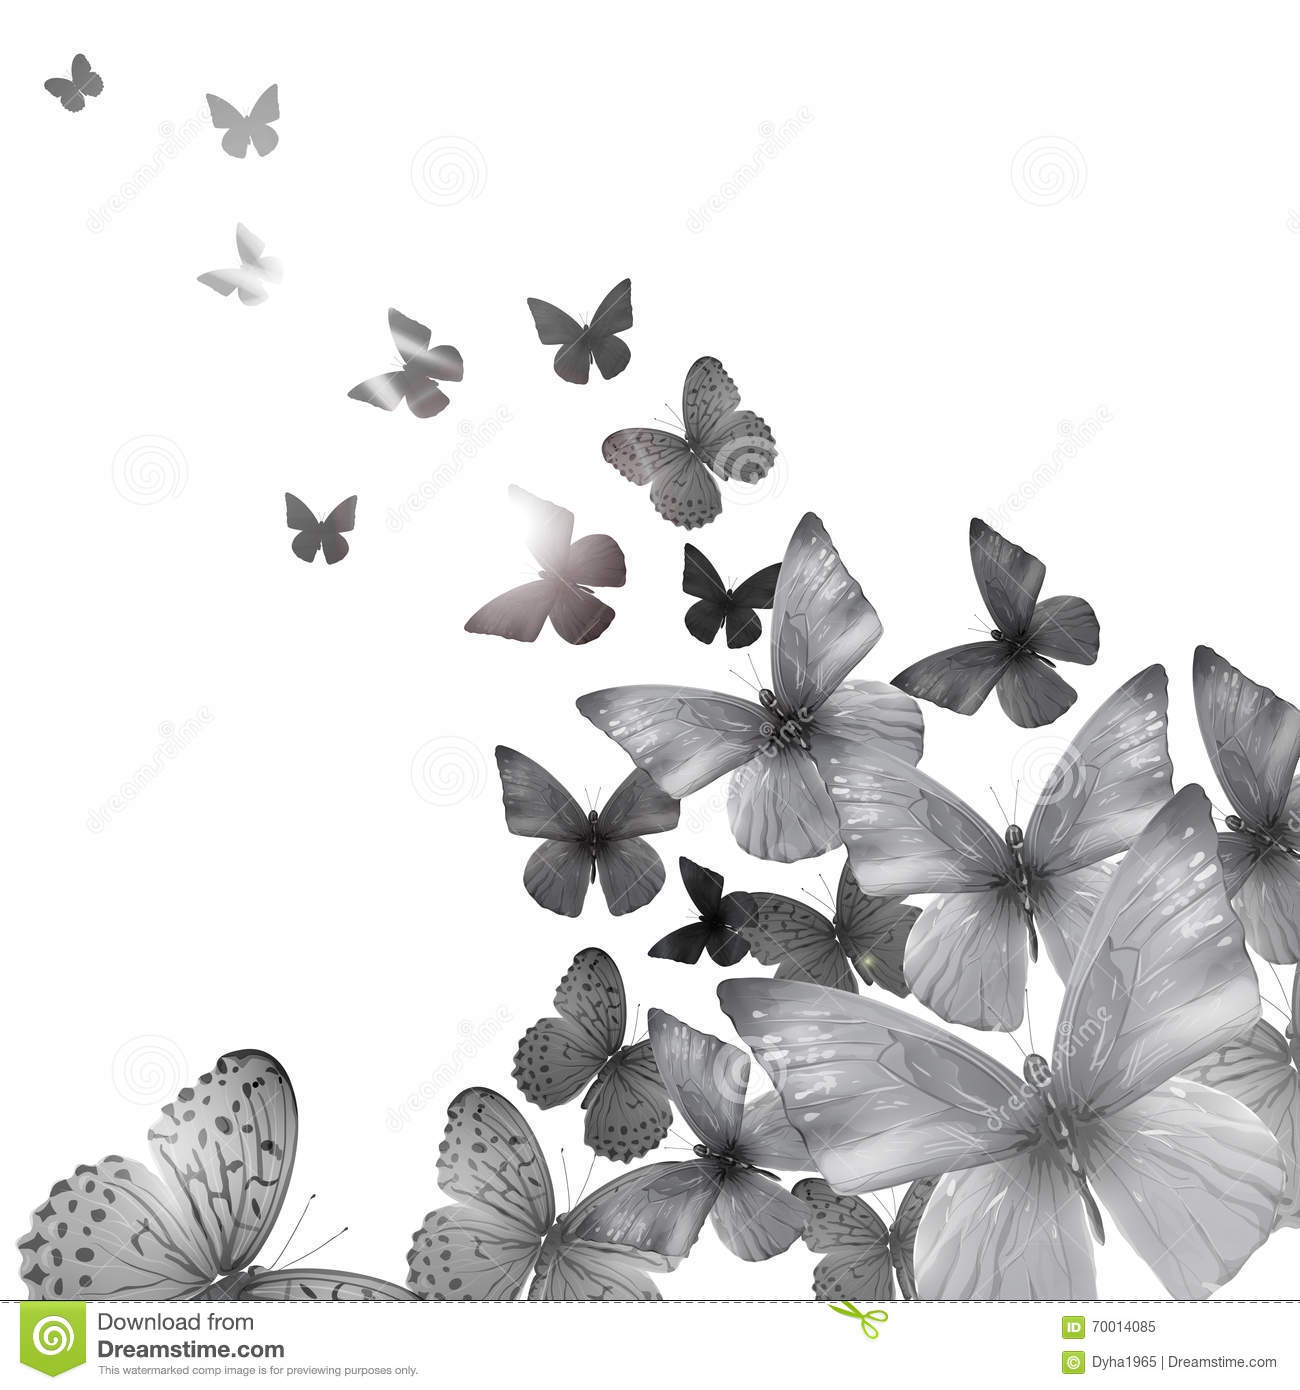 Summer Butterfly Black-white Stock Vector - Image: 70014085